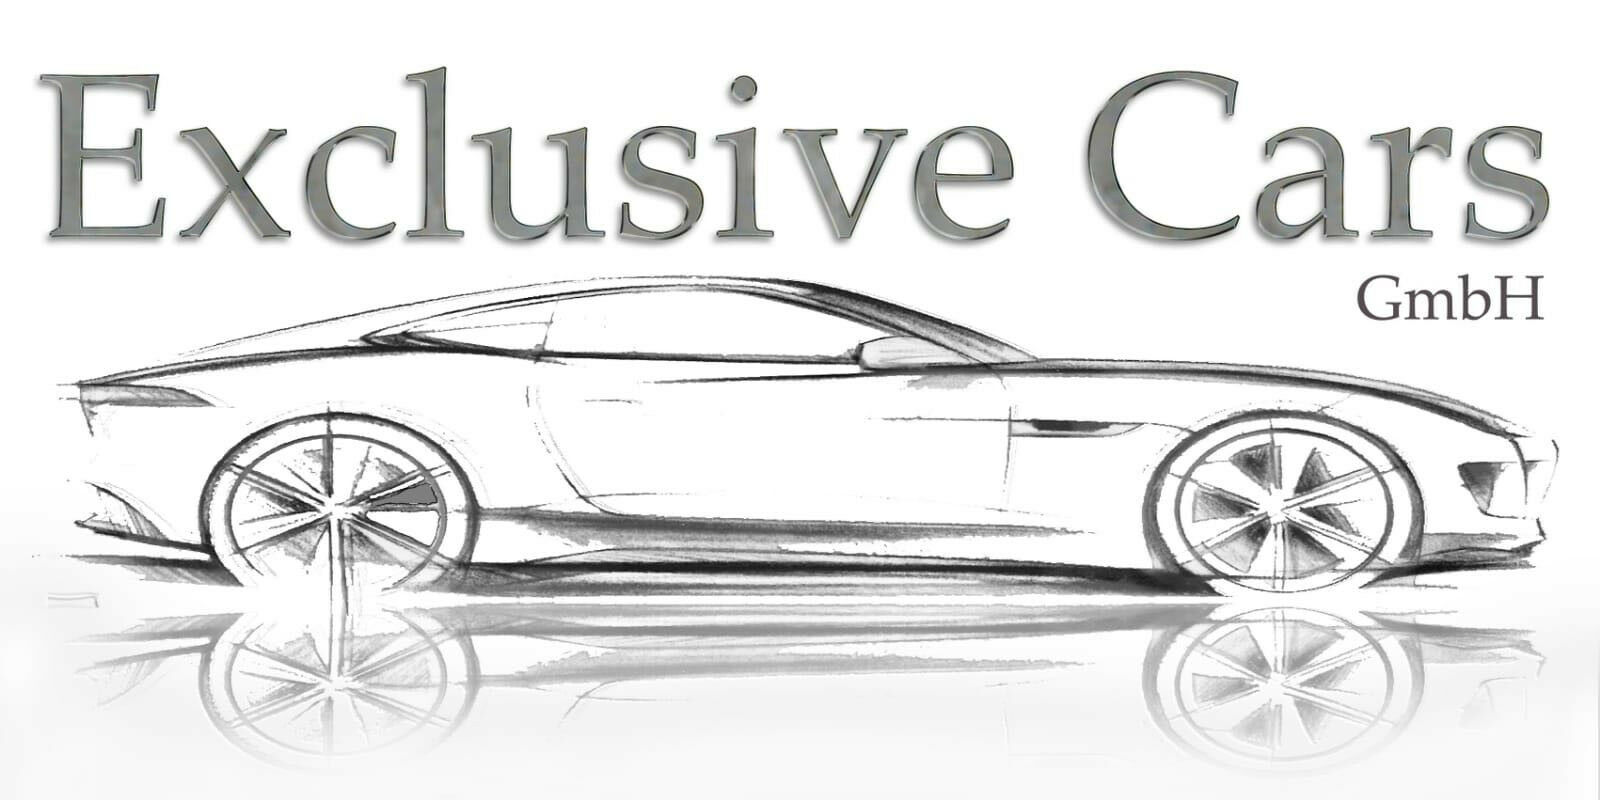 Exclusive Cars GmbH